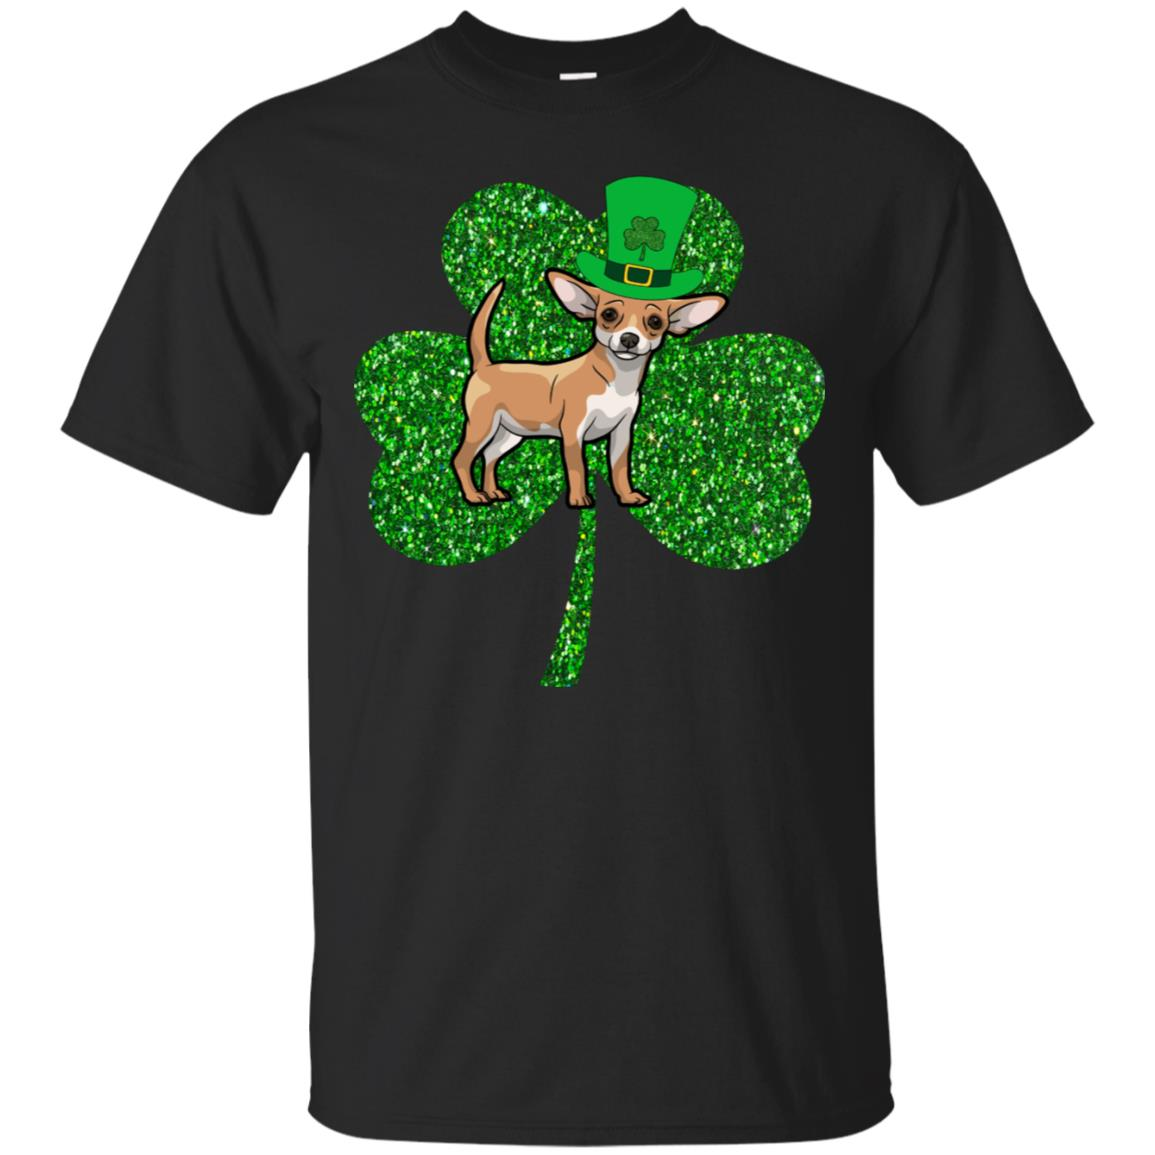 Lucky Shirt For Chihuahua Dog Lover On St Patrick's Day 99promocode